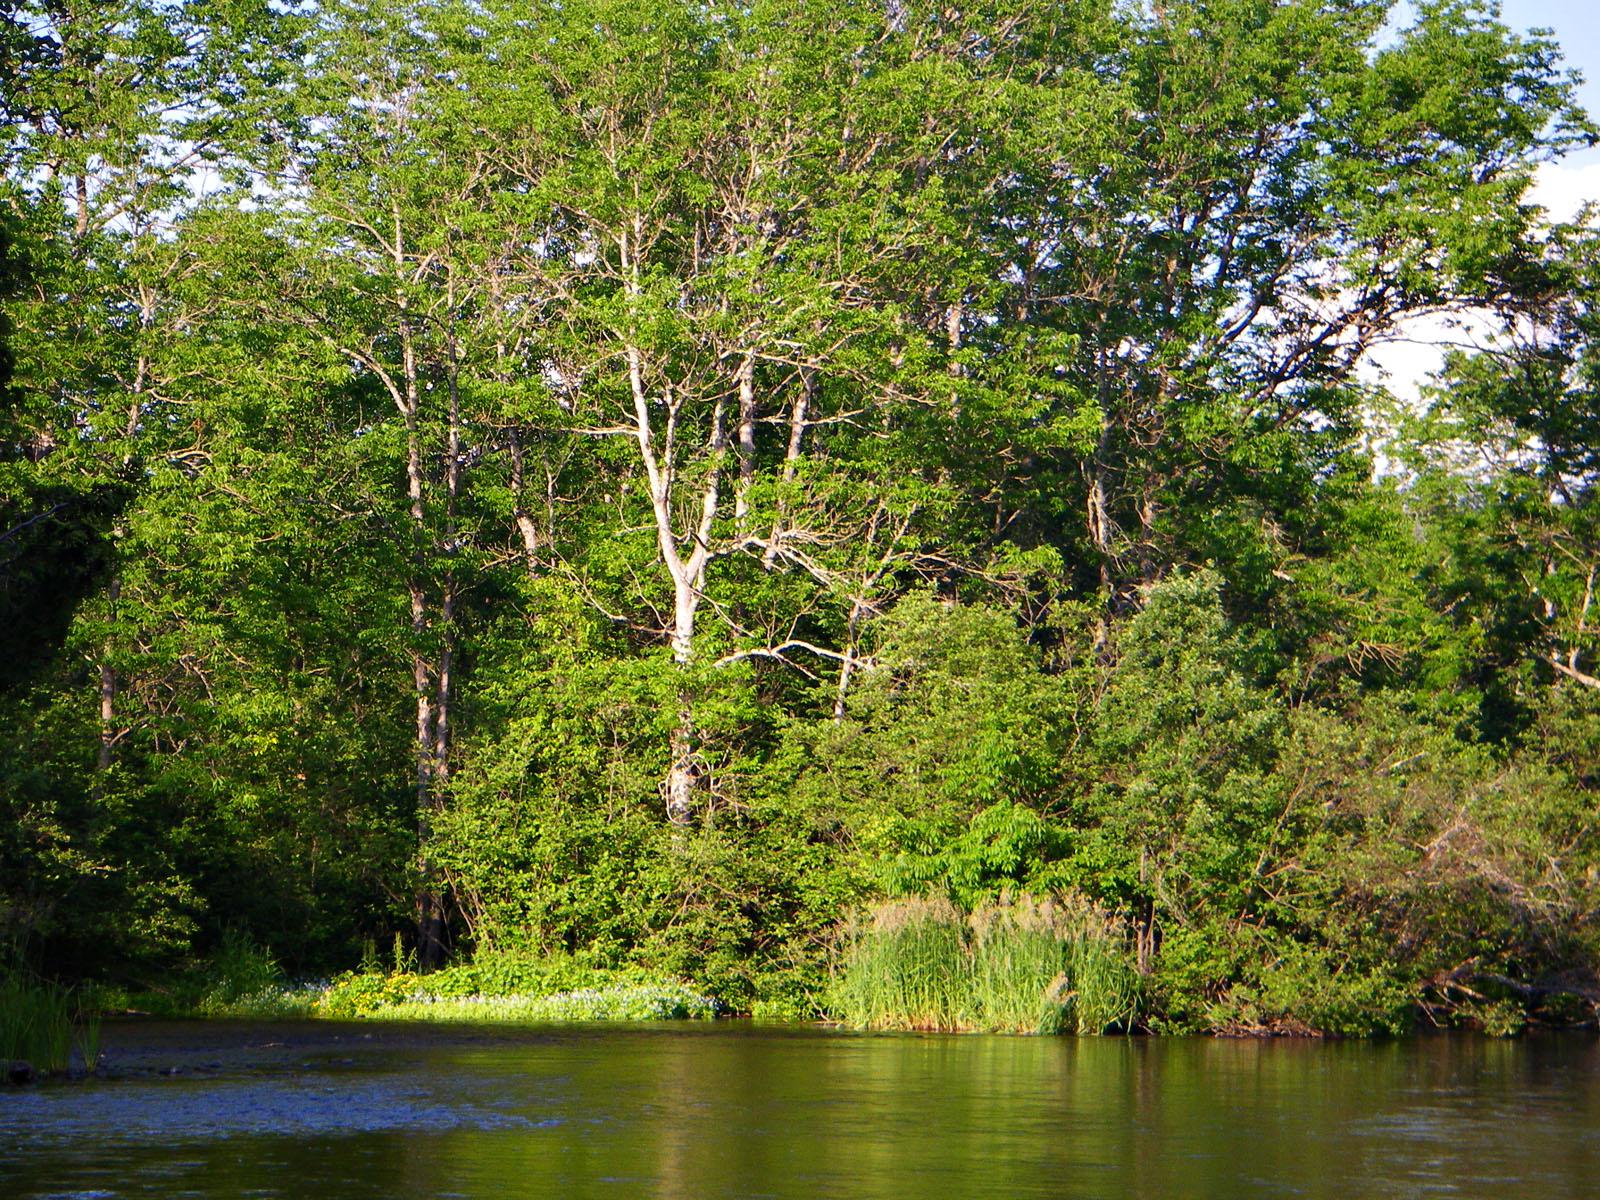 From the Namekagon River near Seeley in Wisconsin.